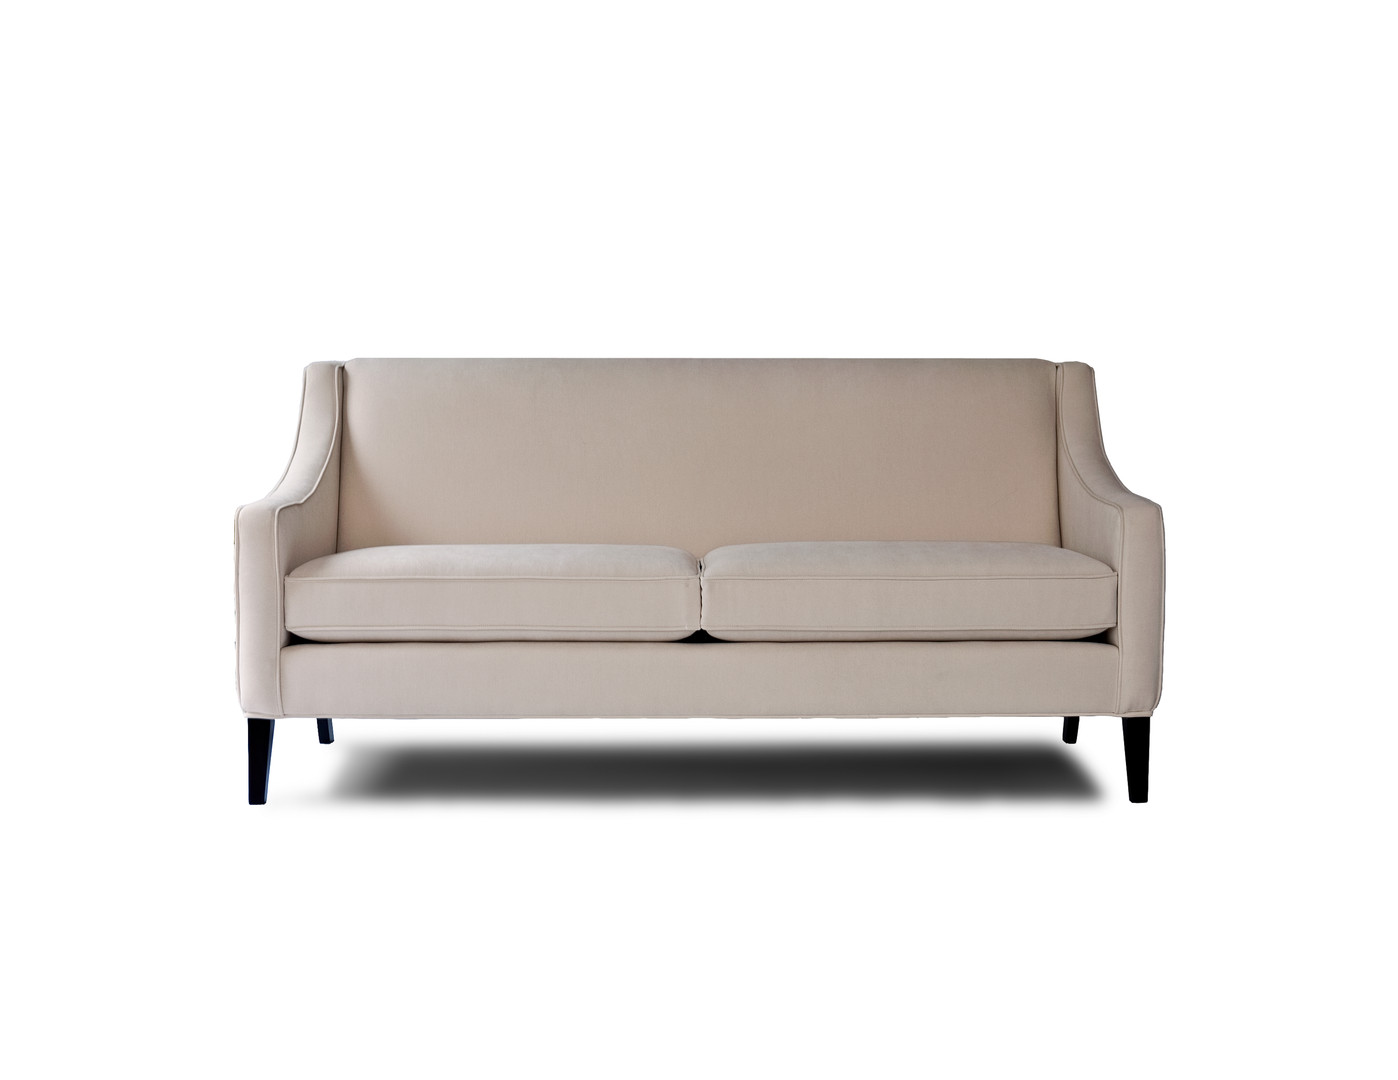 Furniture Photography - Marquee Beige Sofa